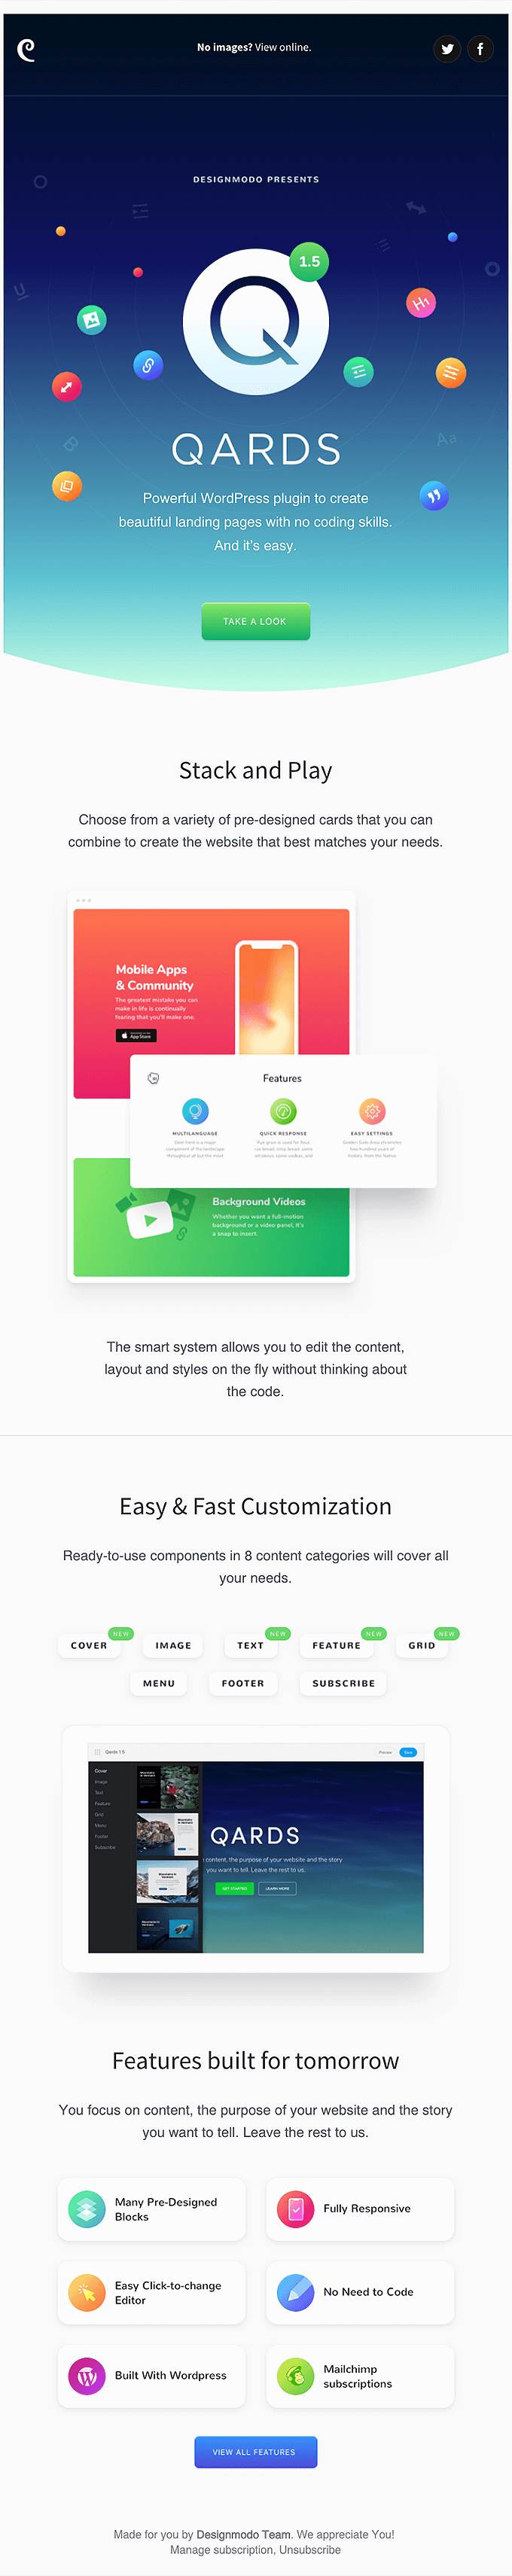 product announcement example